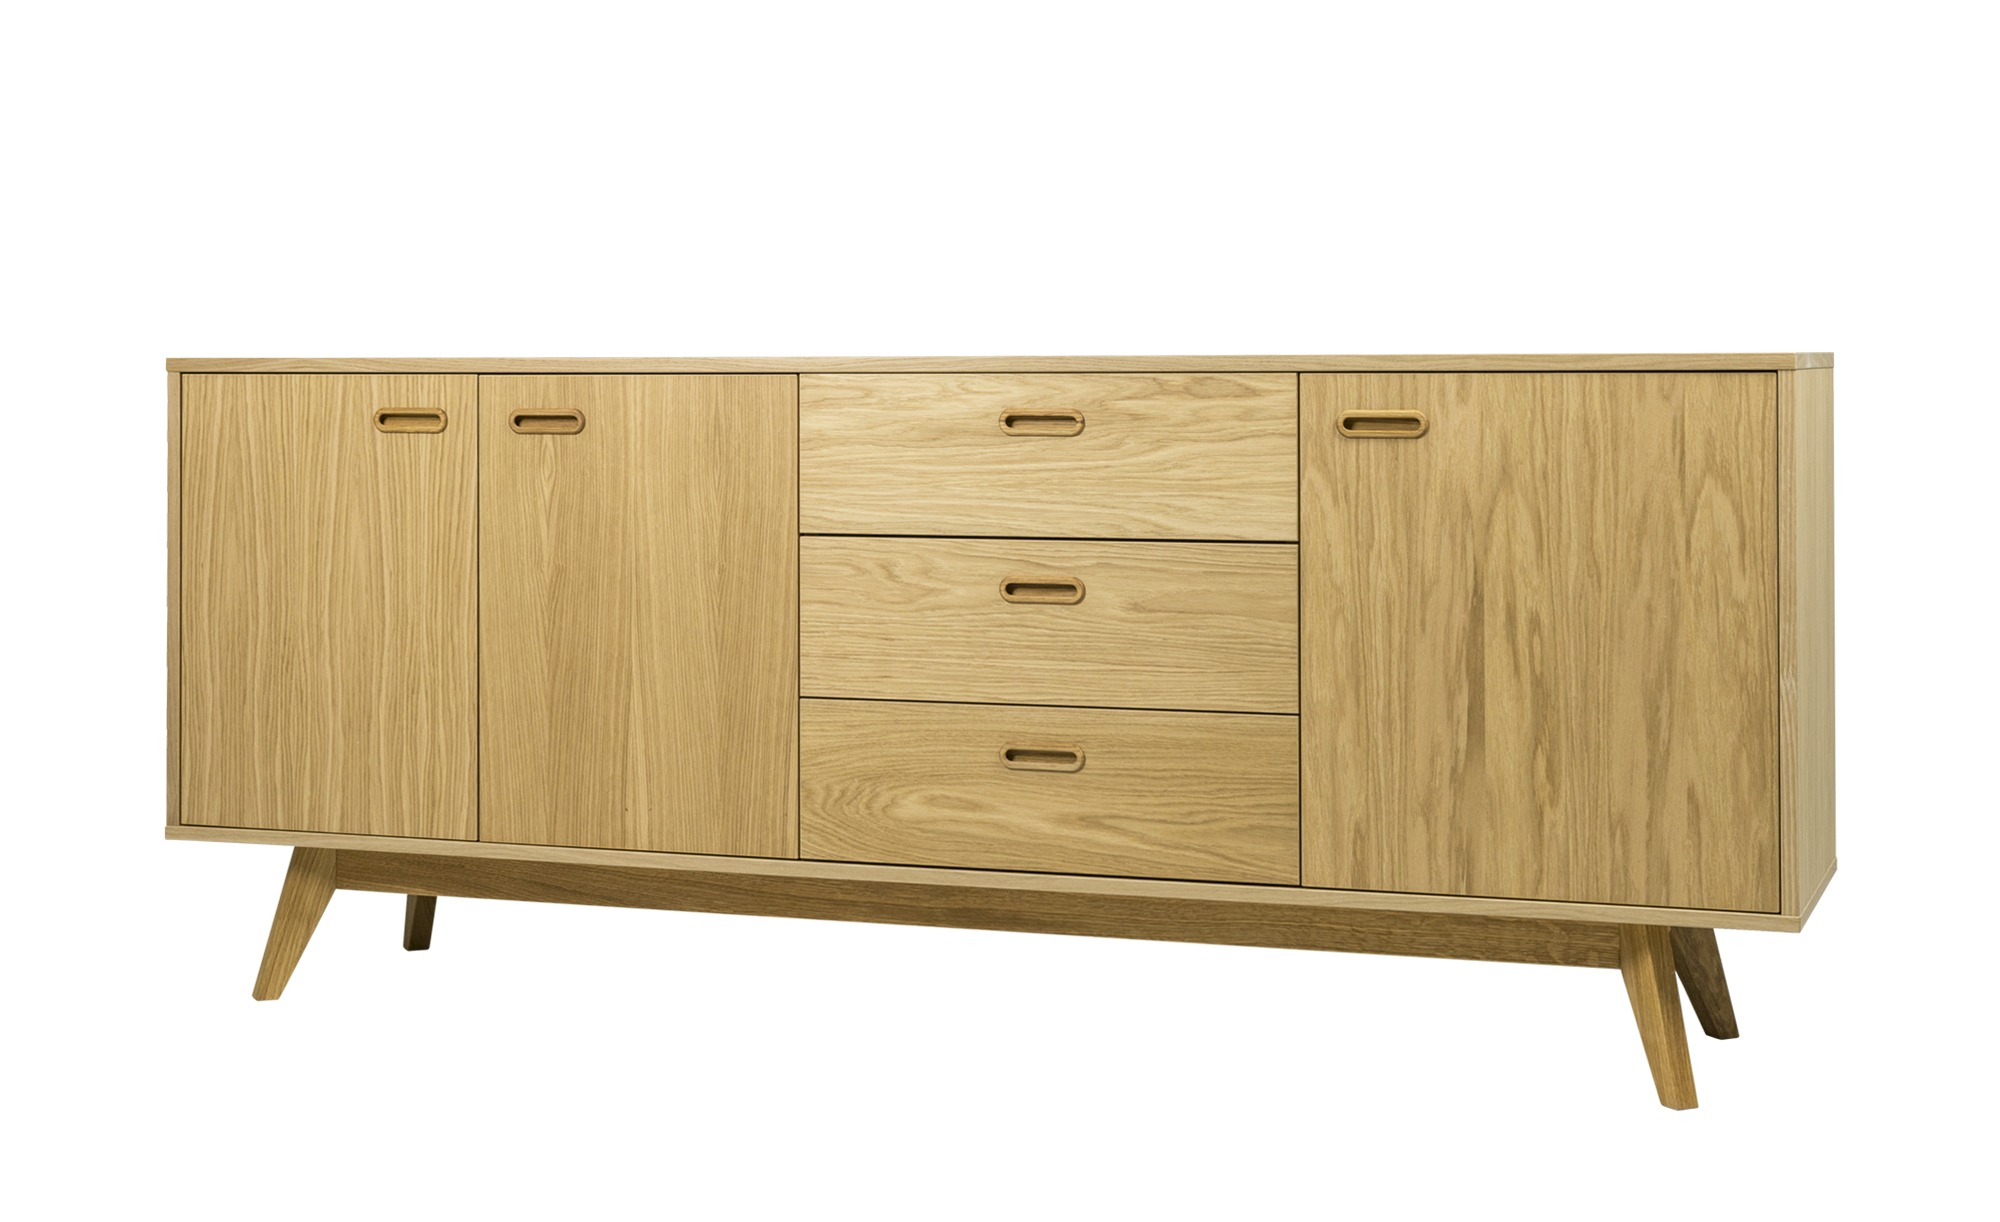 kommode jesper breite 200 cm h he 82 cm holzfarben. Black Bedroom Furniture Sets. Home Design Ideas